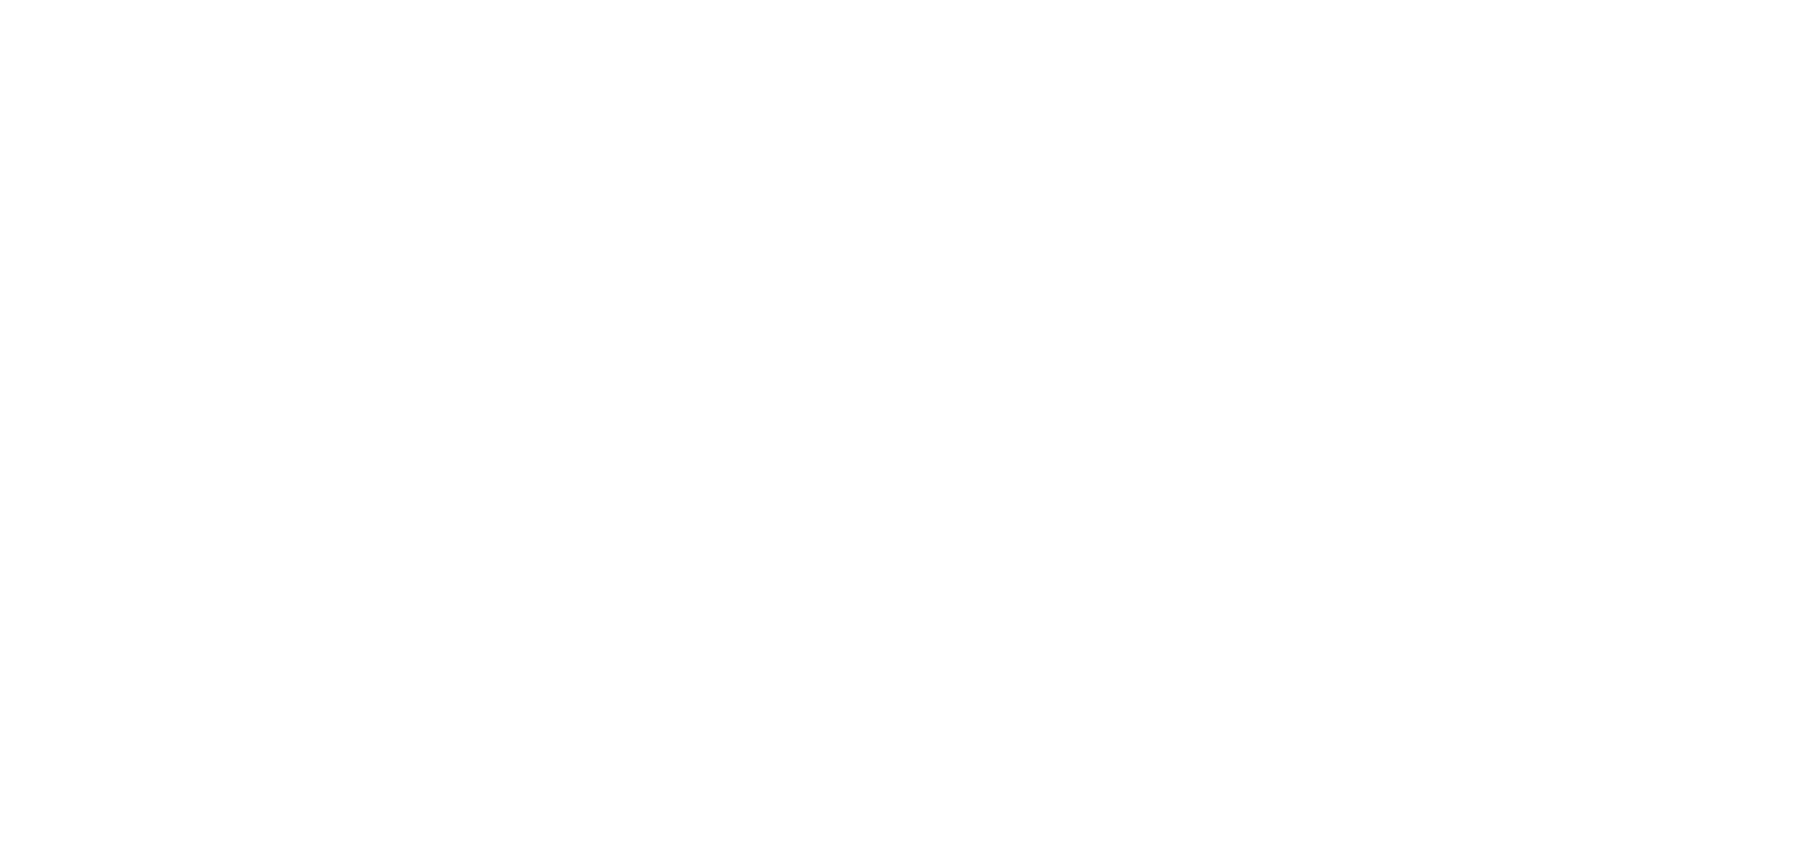 deverr_logo_final_white_big_transparent